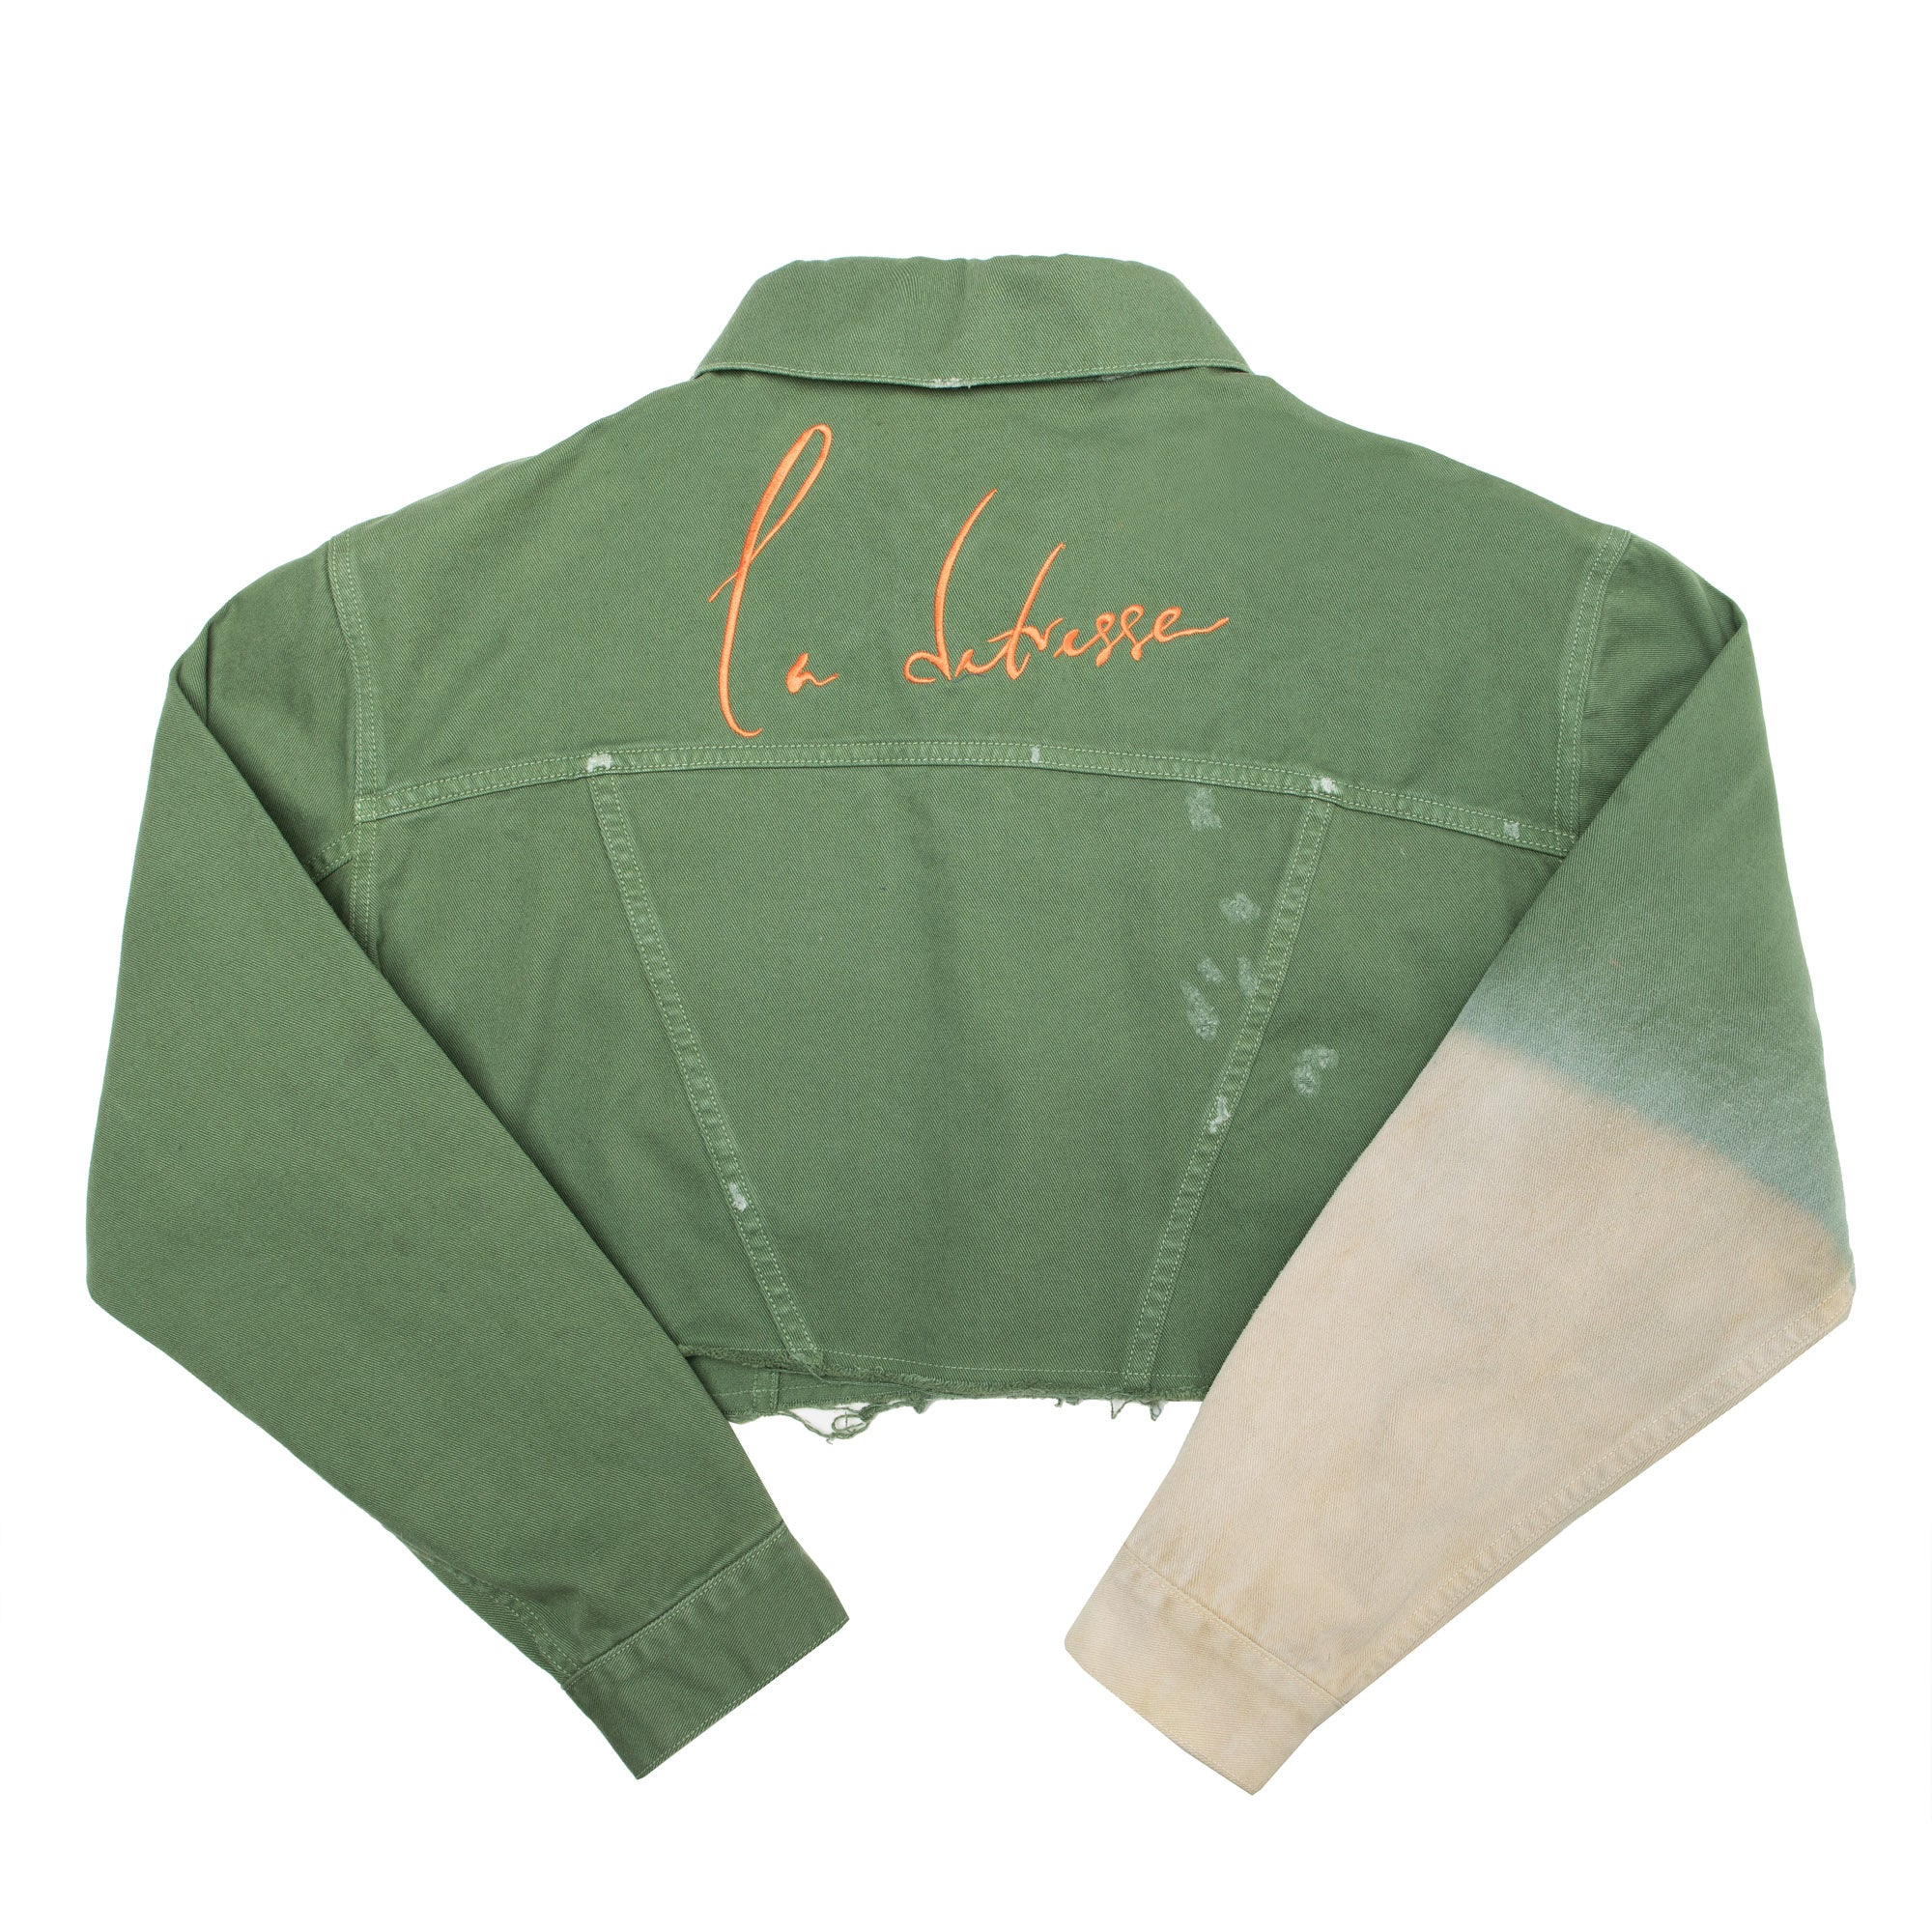 The Green Sleeve Embroidery Crop